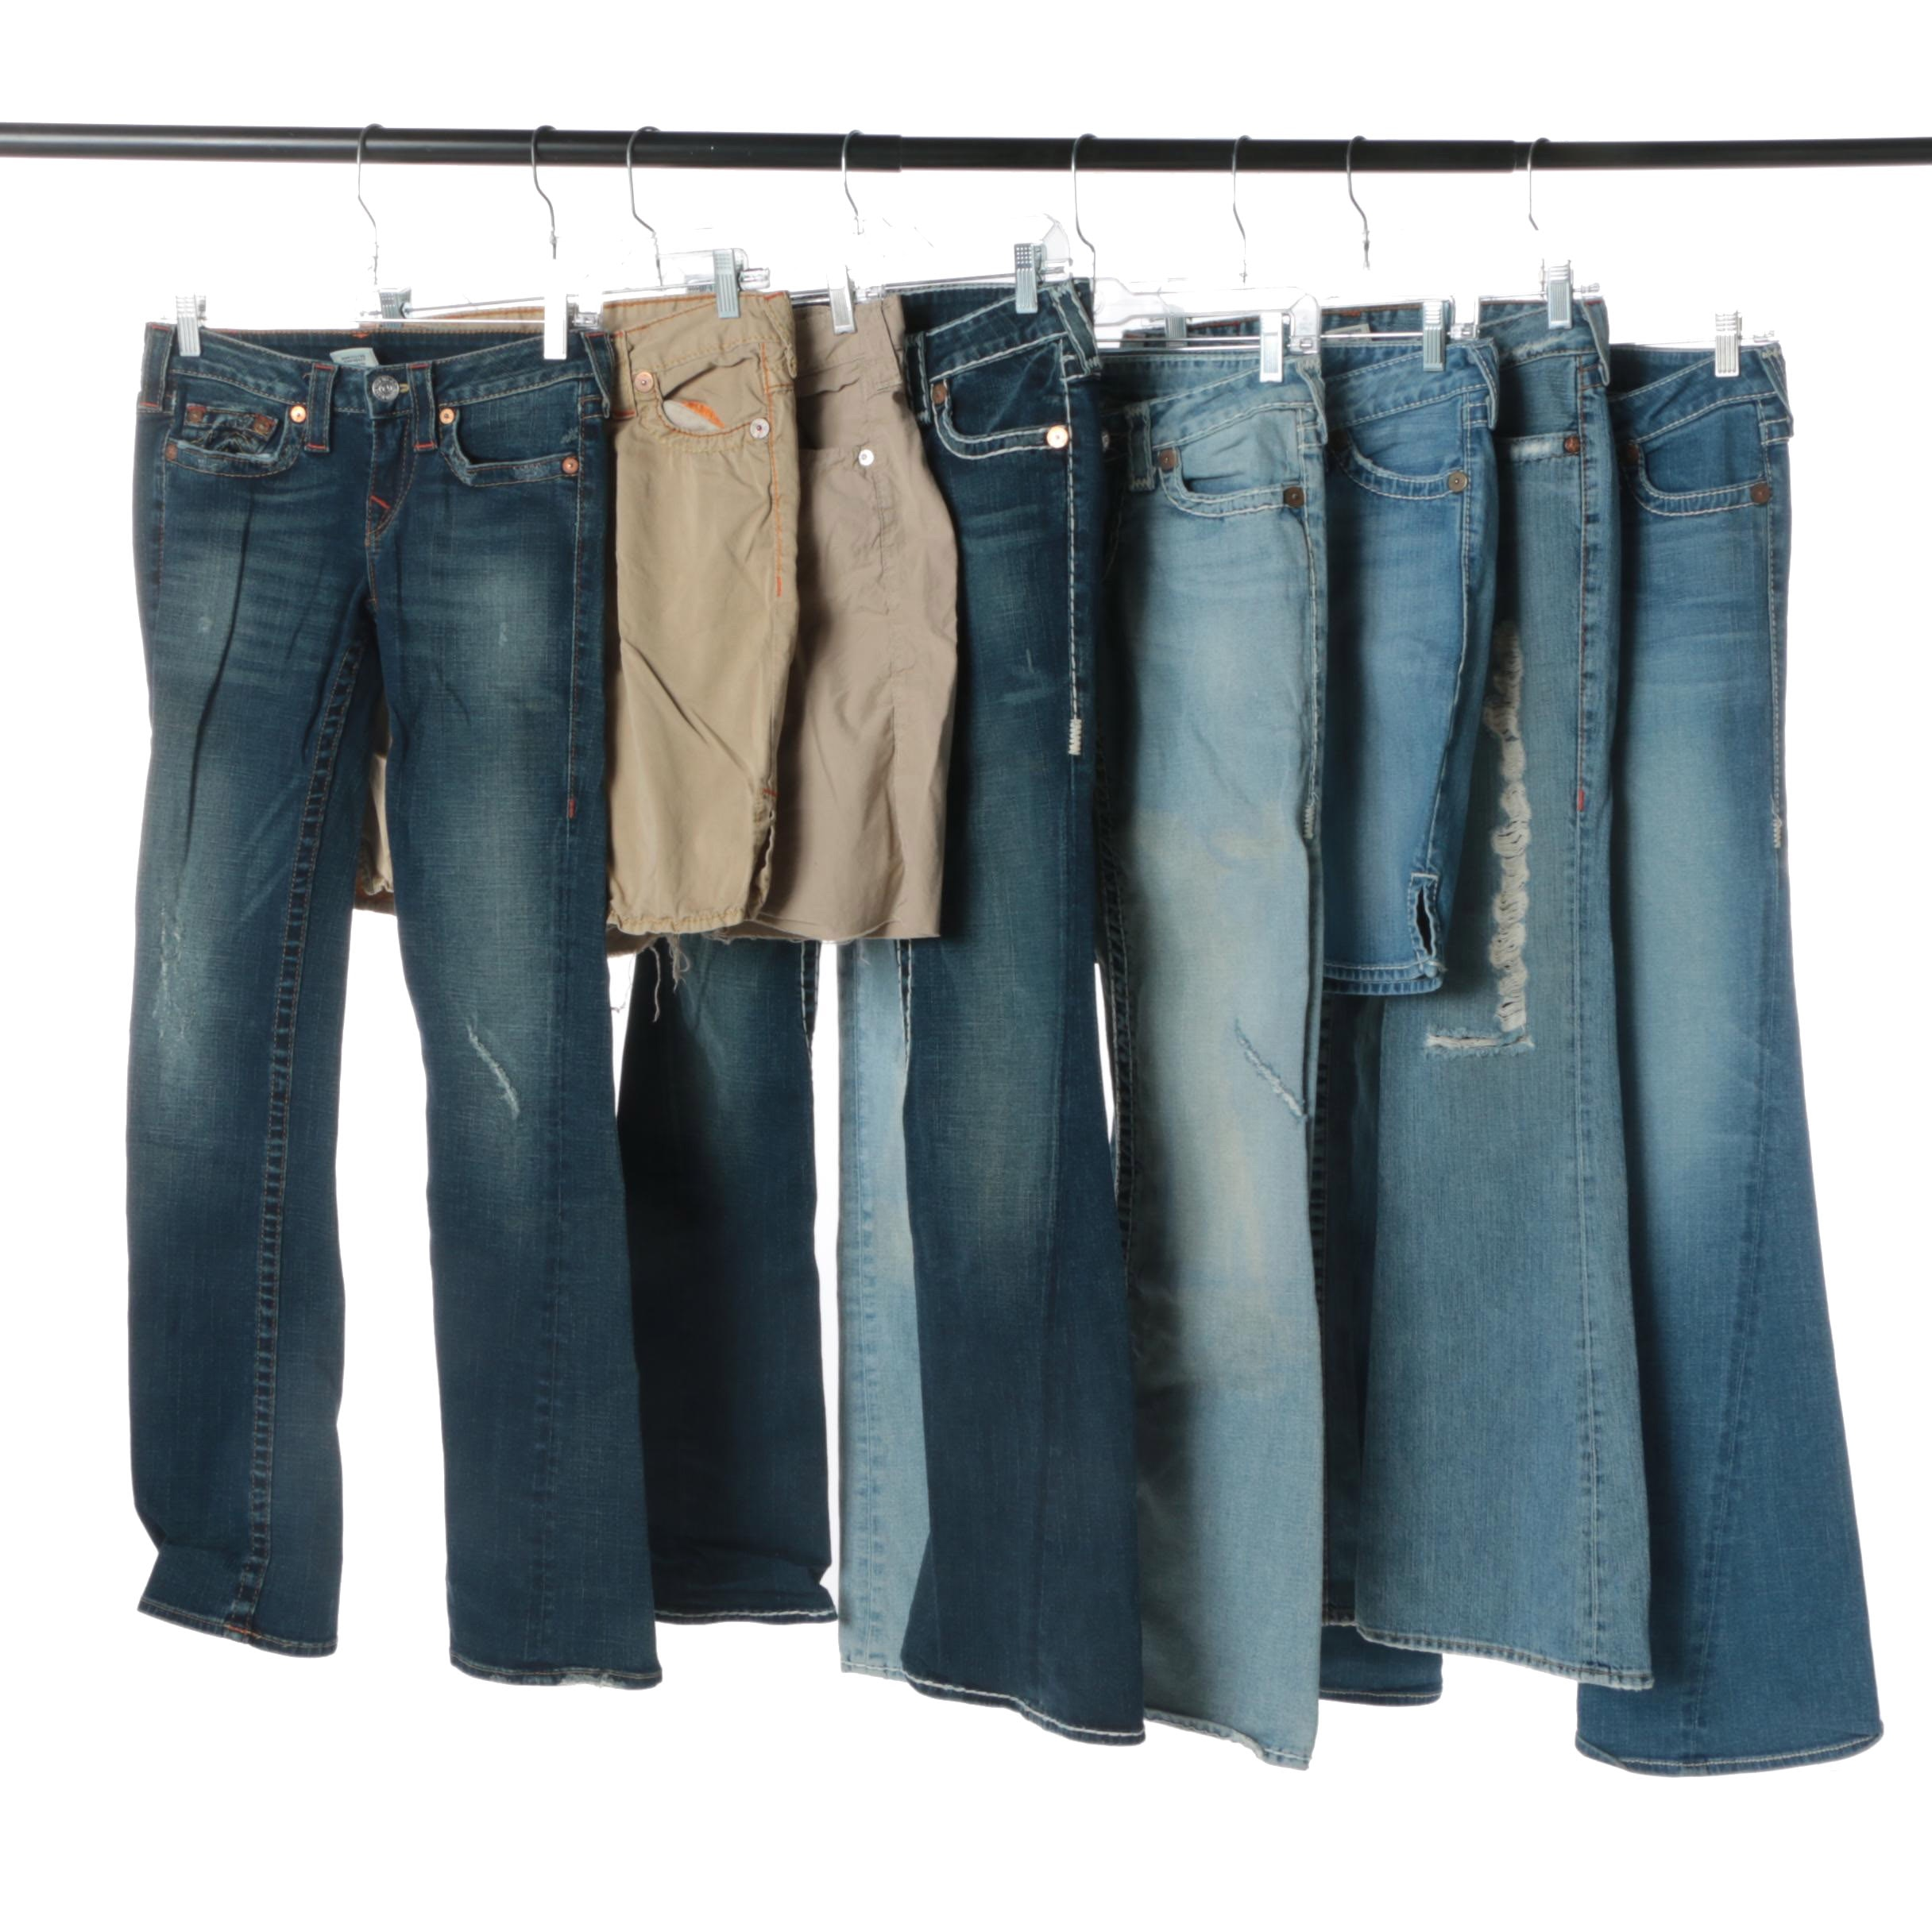 Women's Jeans and Shorts Including True Religion Brand Jeans